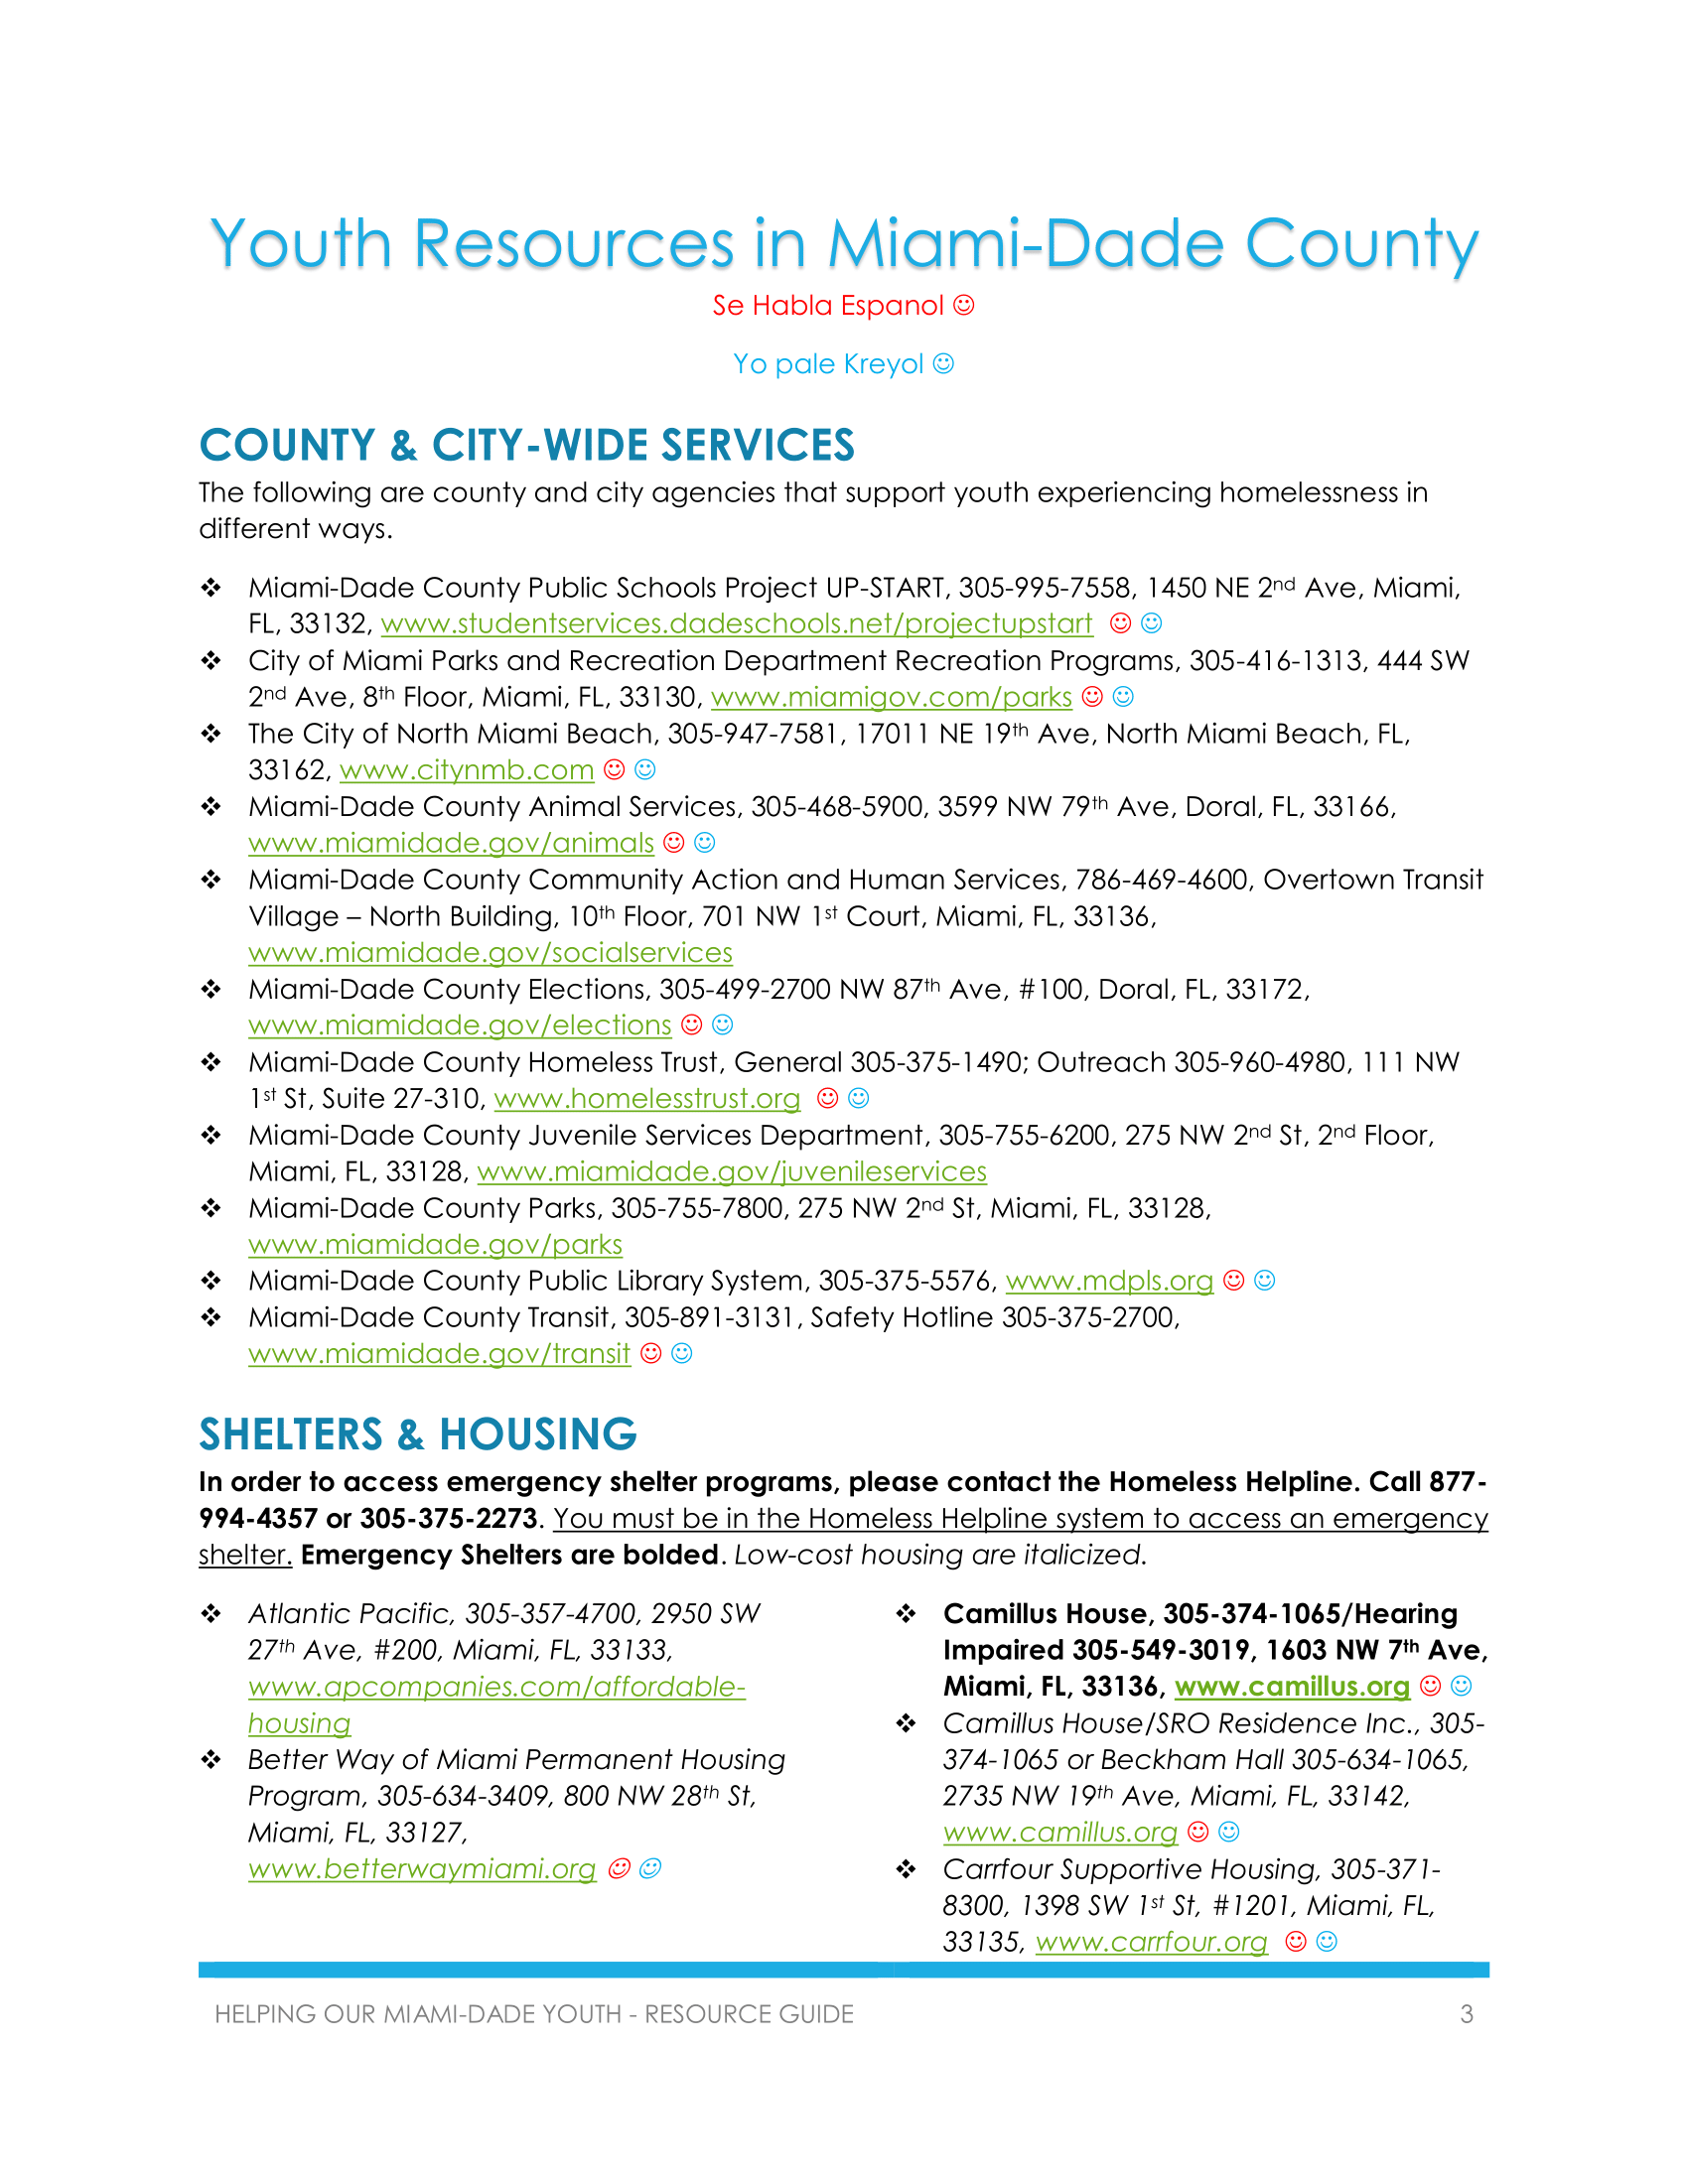 Youth Resource Guide - May 2018-08.png